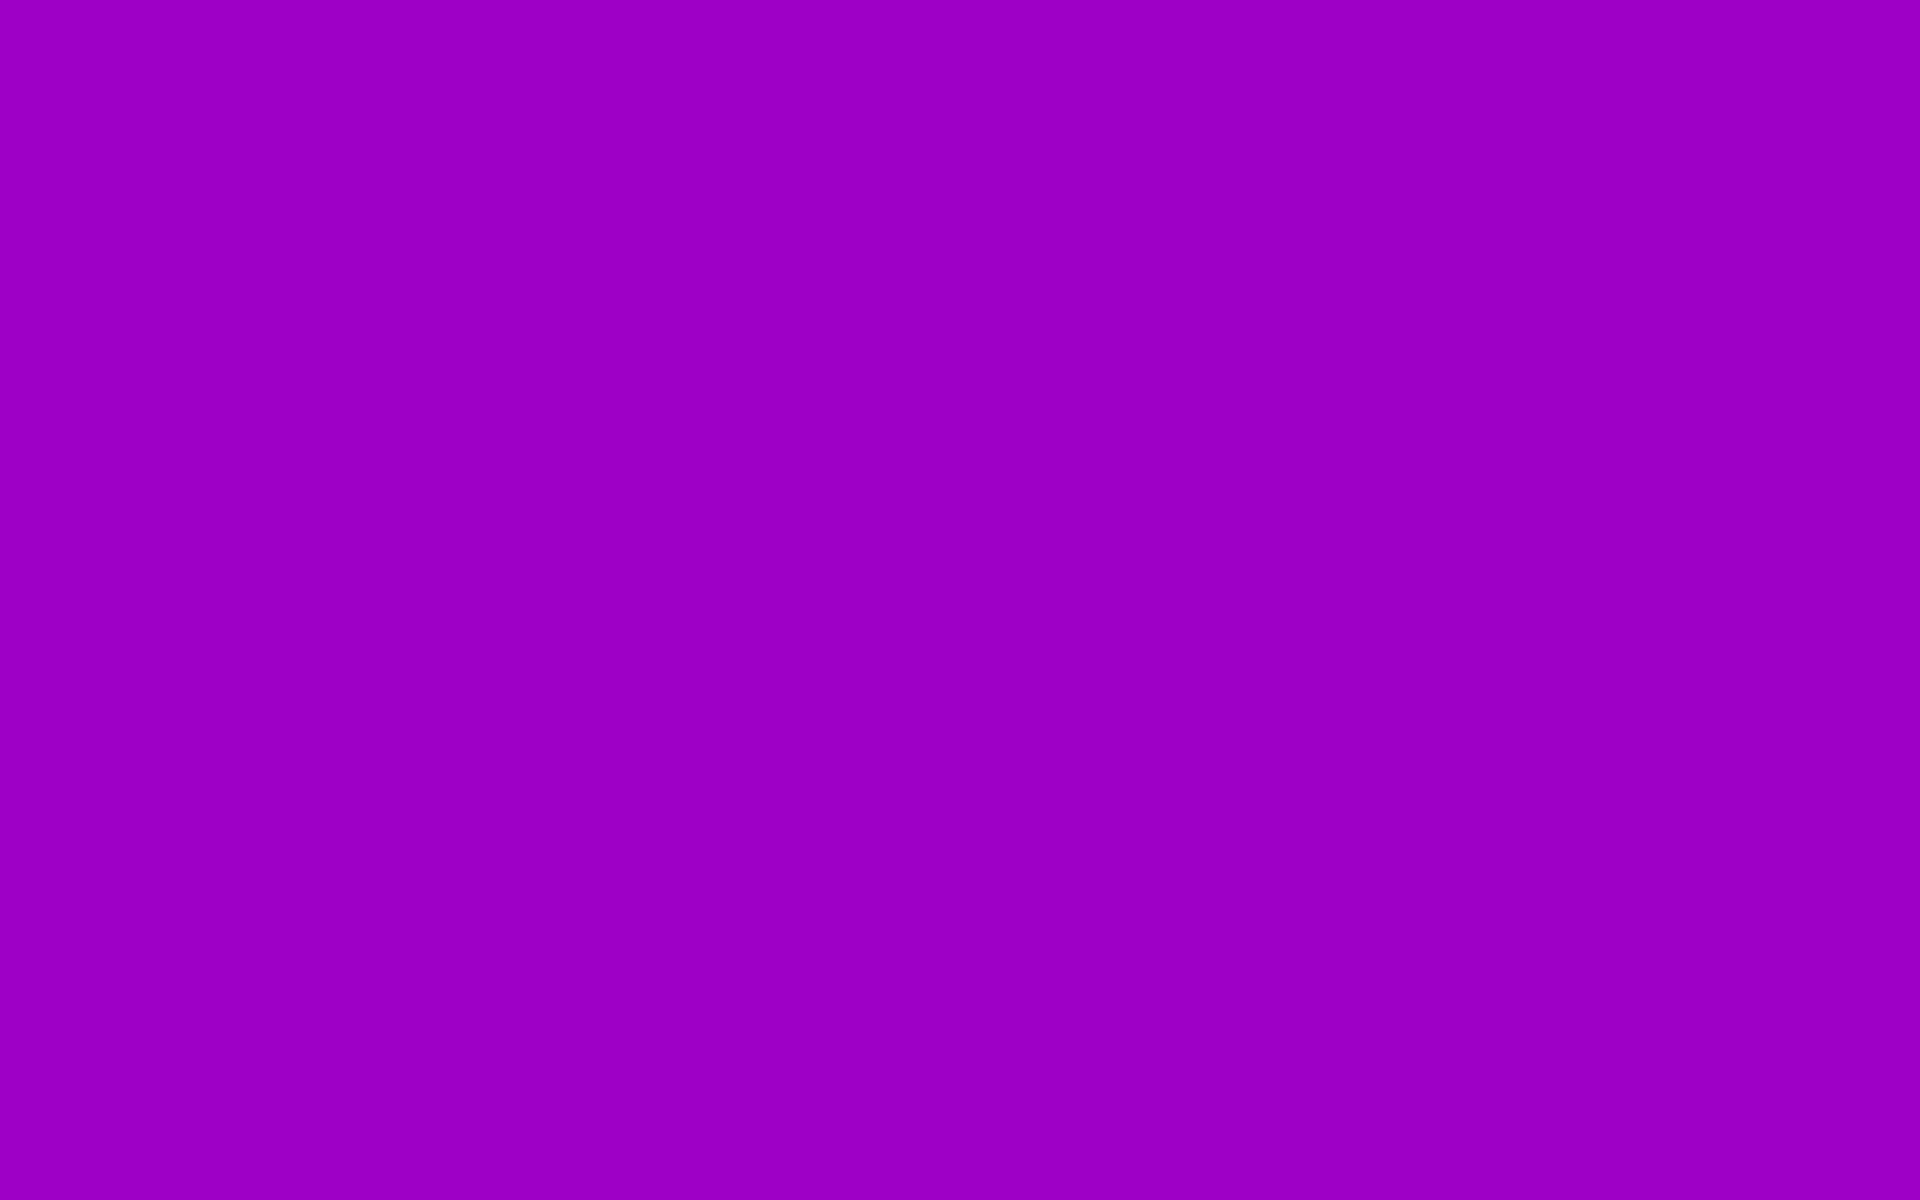 1920x1200 Purple Munsell Solid Color Background